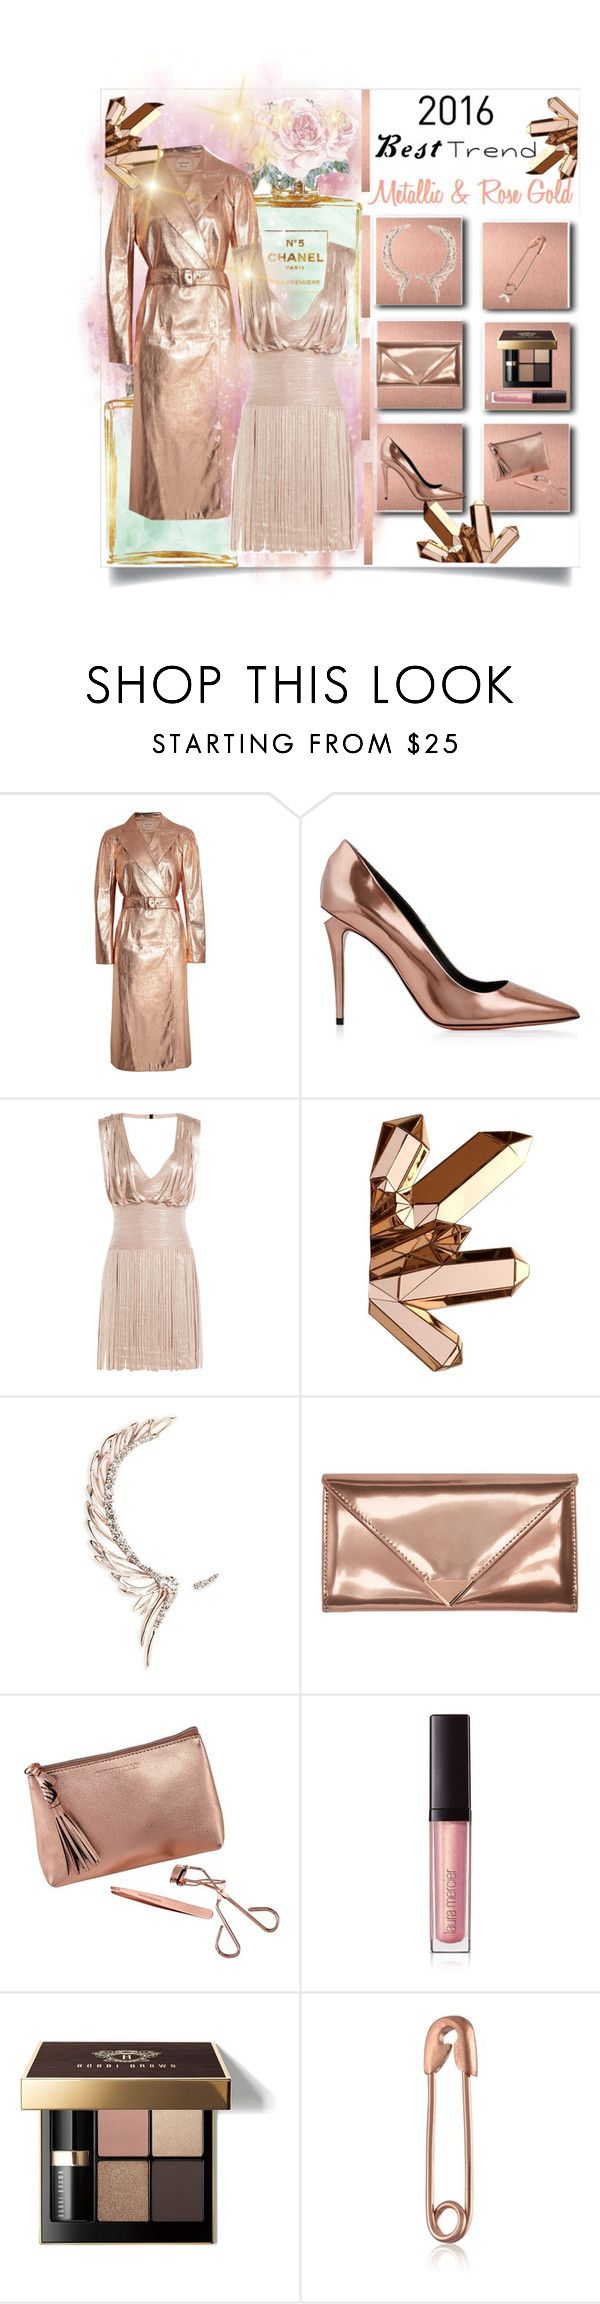 """""""My Favorite 2016 Fashion Trend...""""Metallic & Rose Gold"""" by onesweetthing ❤ liked on Polyvore featuring Chanel, Lanvin, Alexander Wang, Hervé Léger, Cristina Ortiz, Tweezerman, Laura Mercier and Bobbi Brown Cosmetics"""